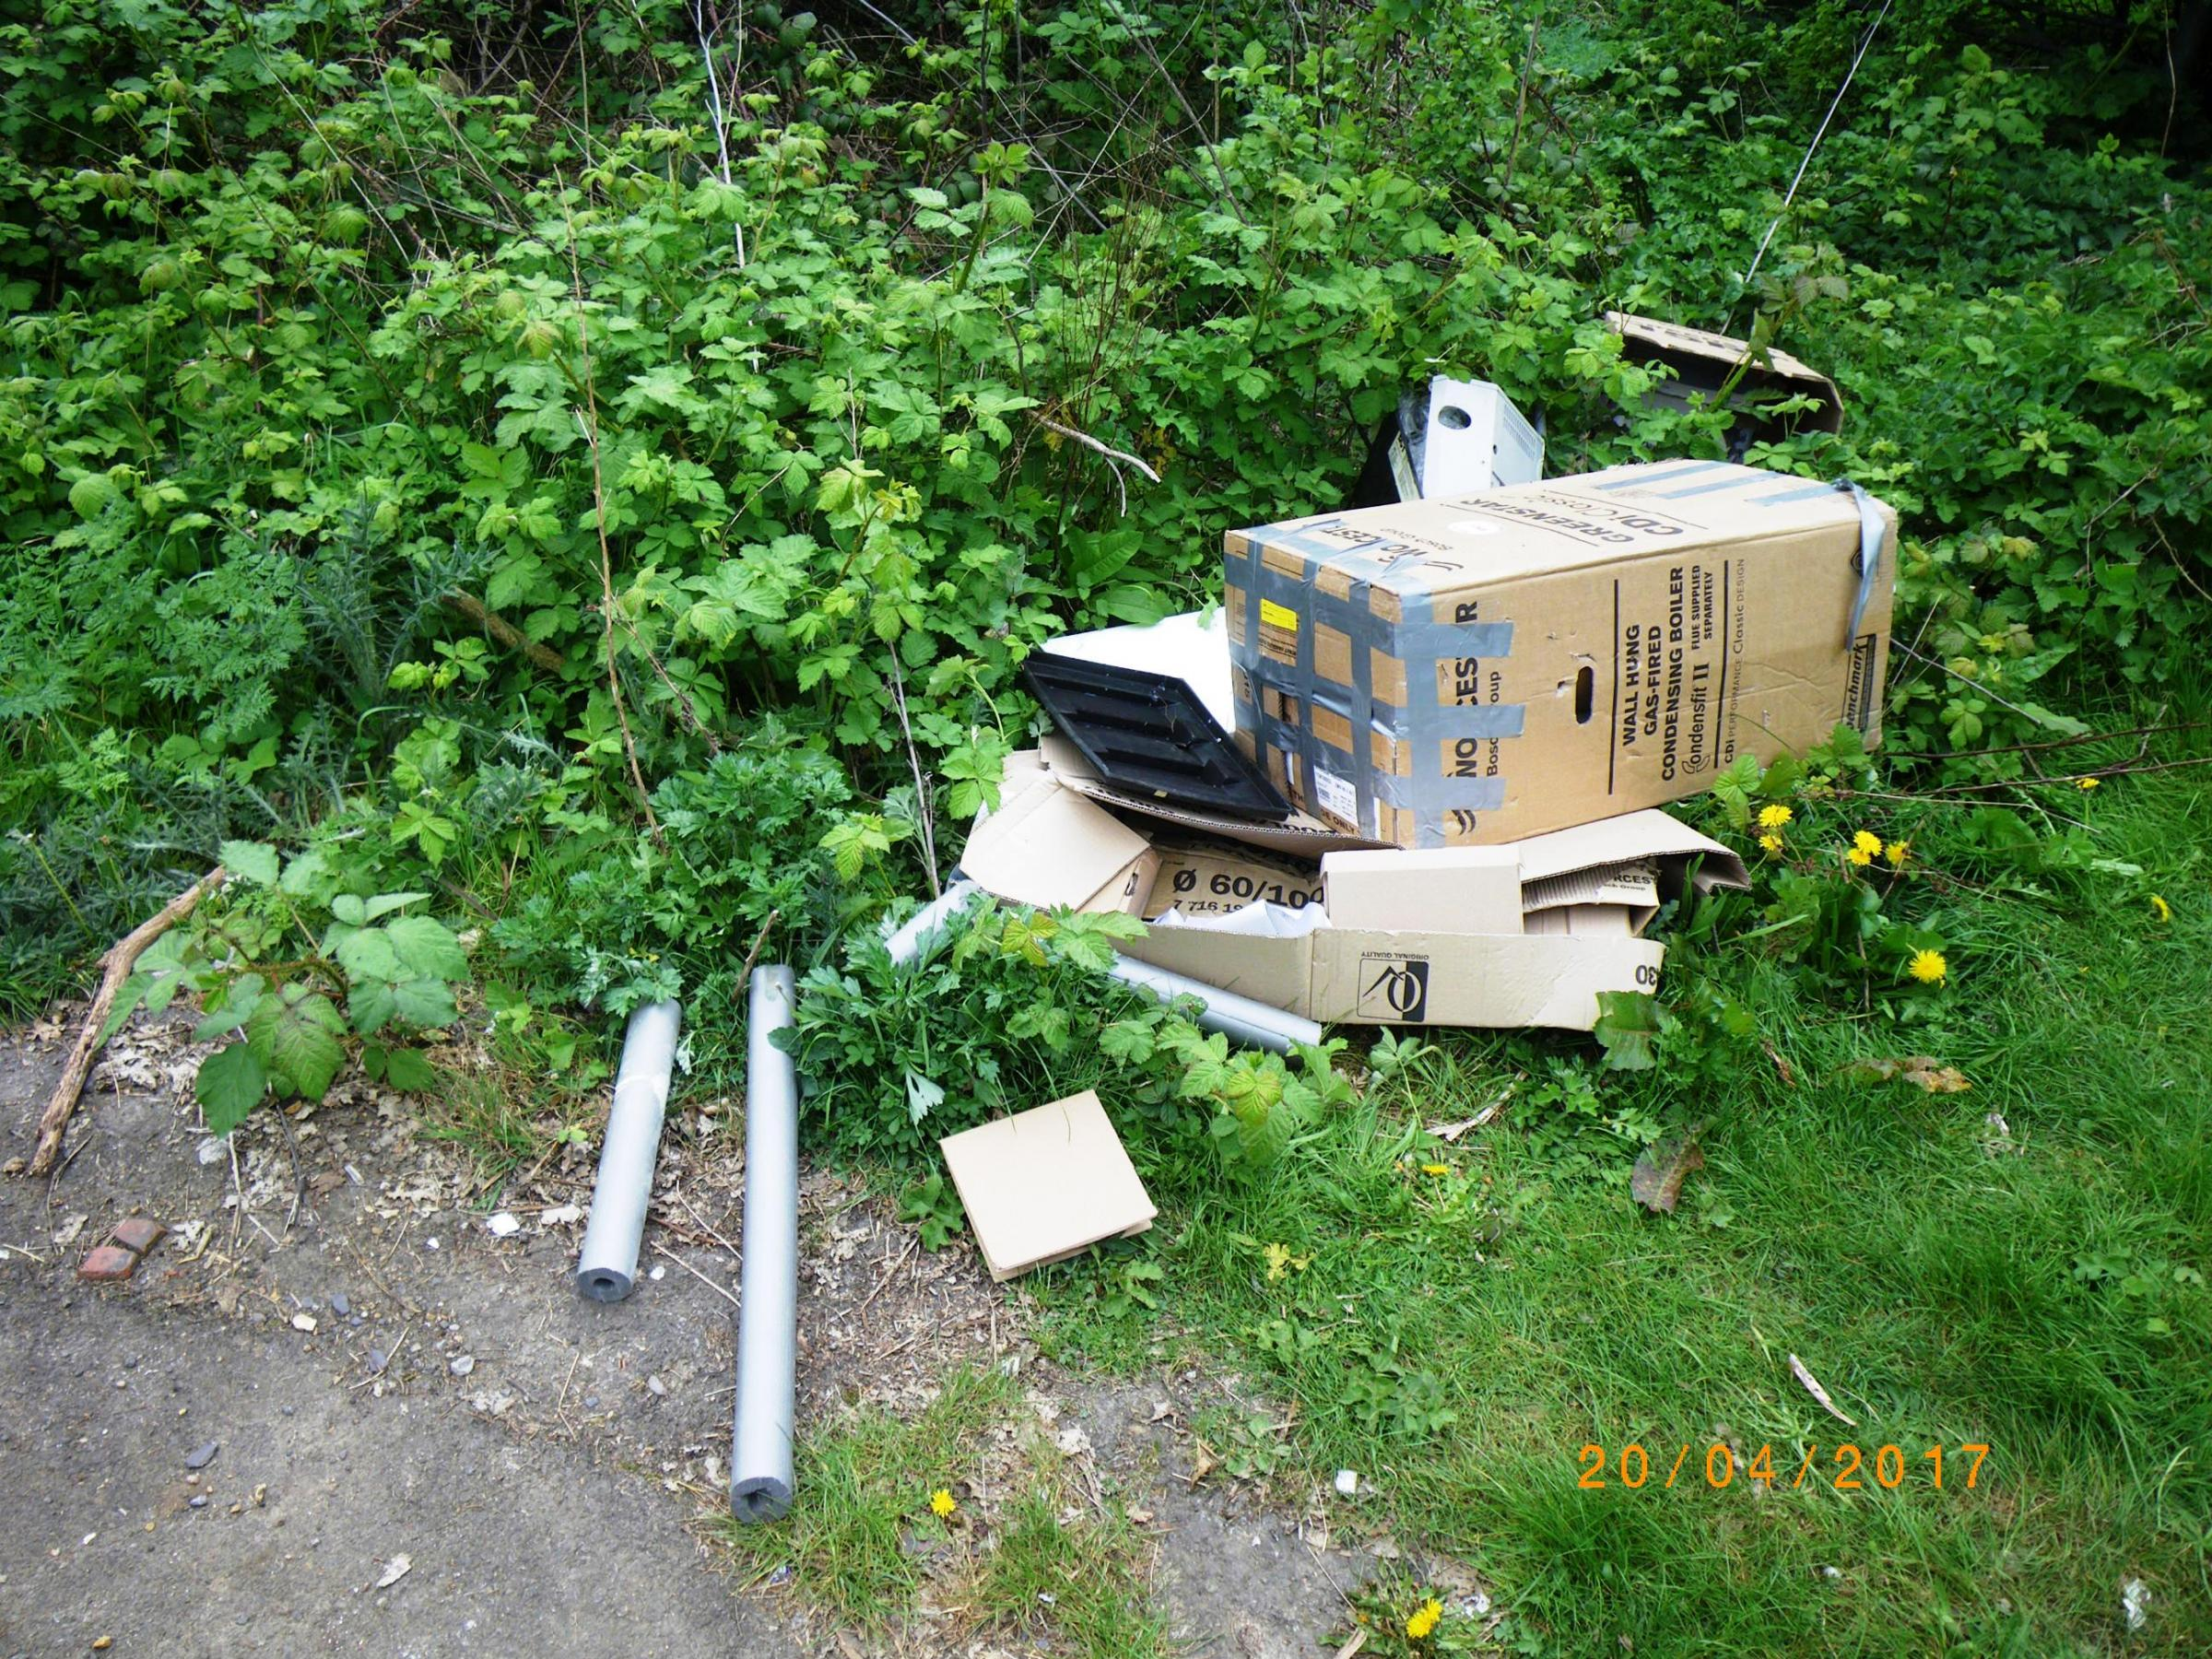 REVEALED: Councils spent more than £100k cleaning up fly-tipped rubbish